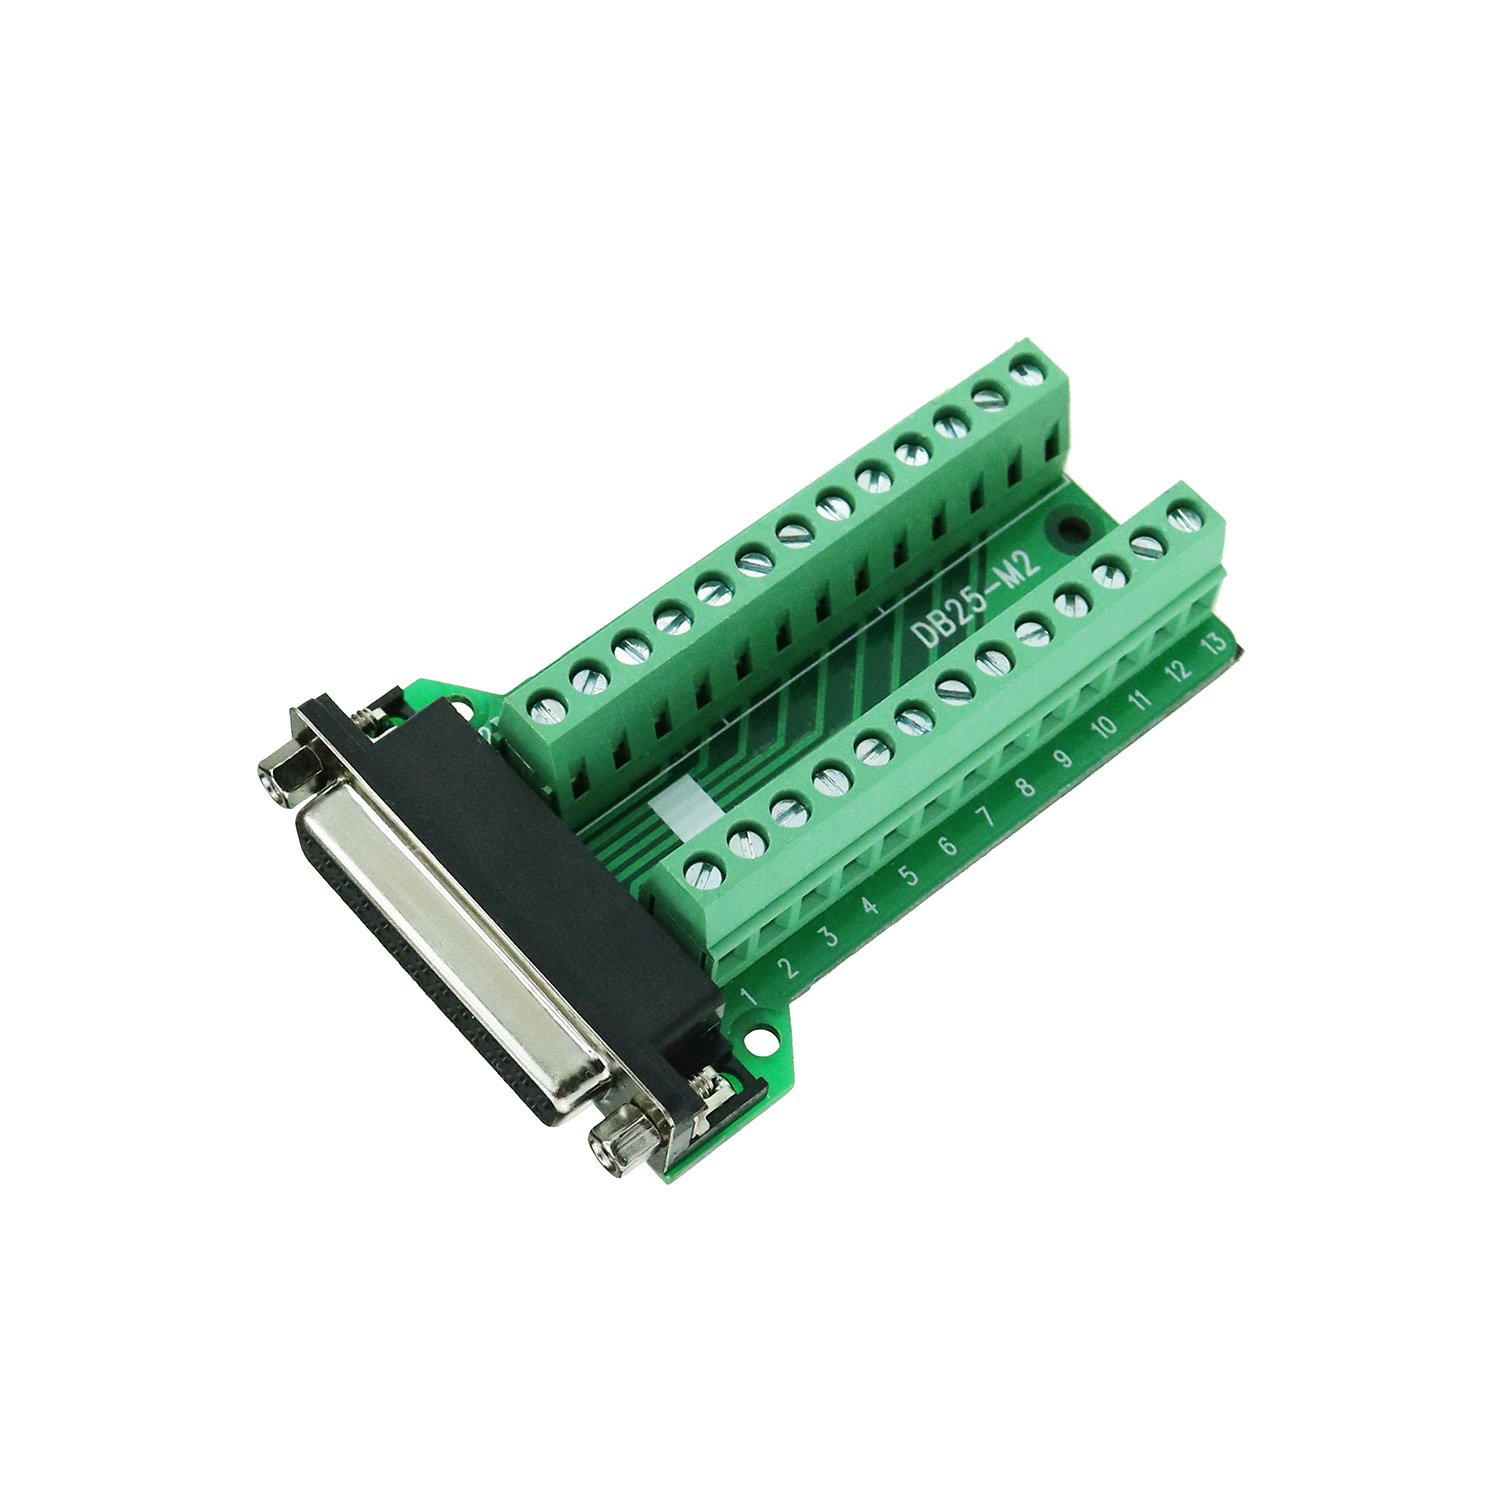 Connector Db25 D-sub Female Plug 25-pin Port Terminal Breakout PCB Board